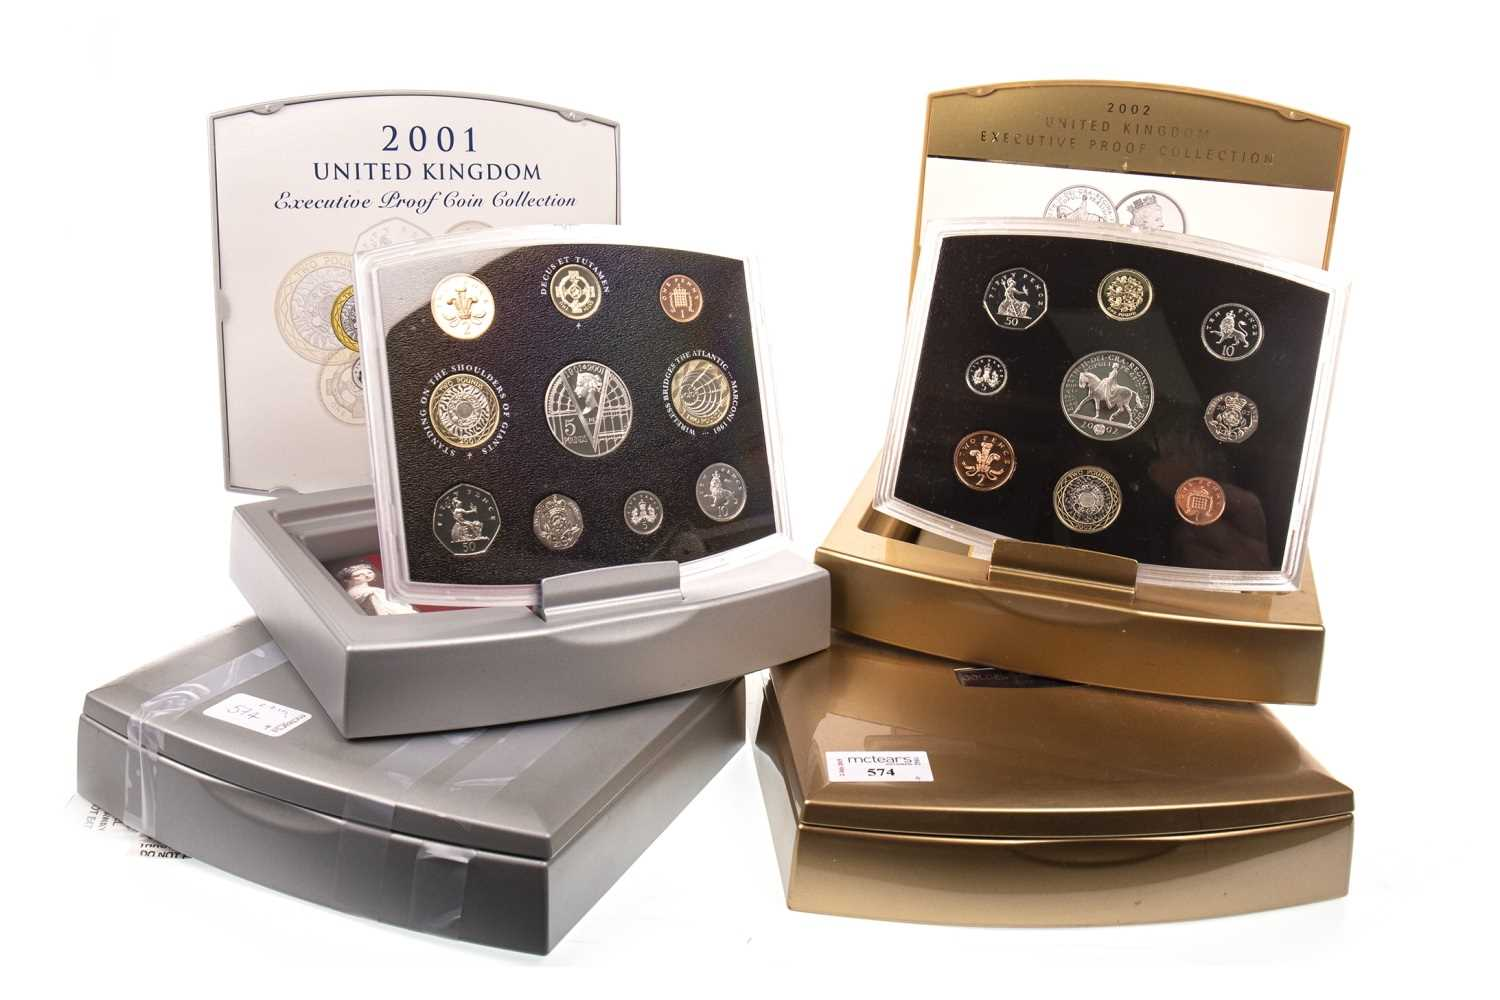 Lot 574-FOUR THE ROYAL MINT EXECUTIVE PROOF COLLECTIONS